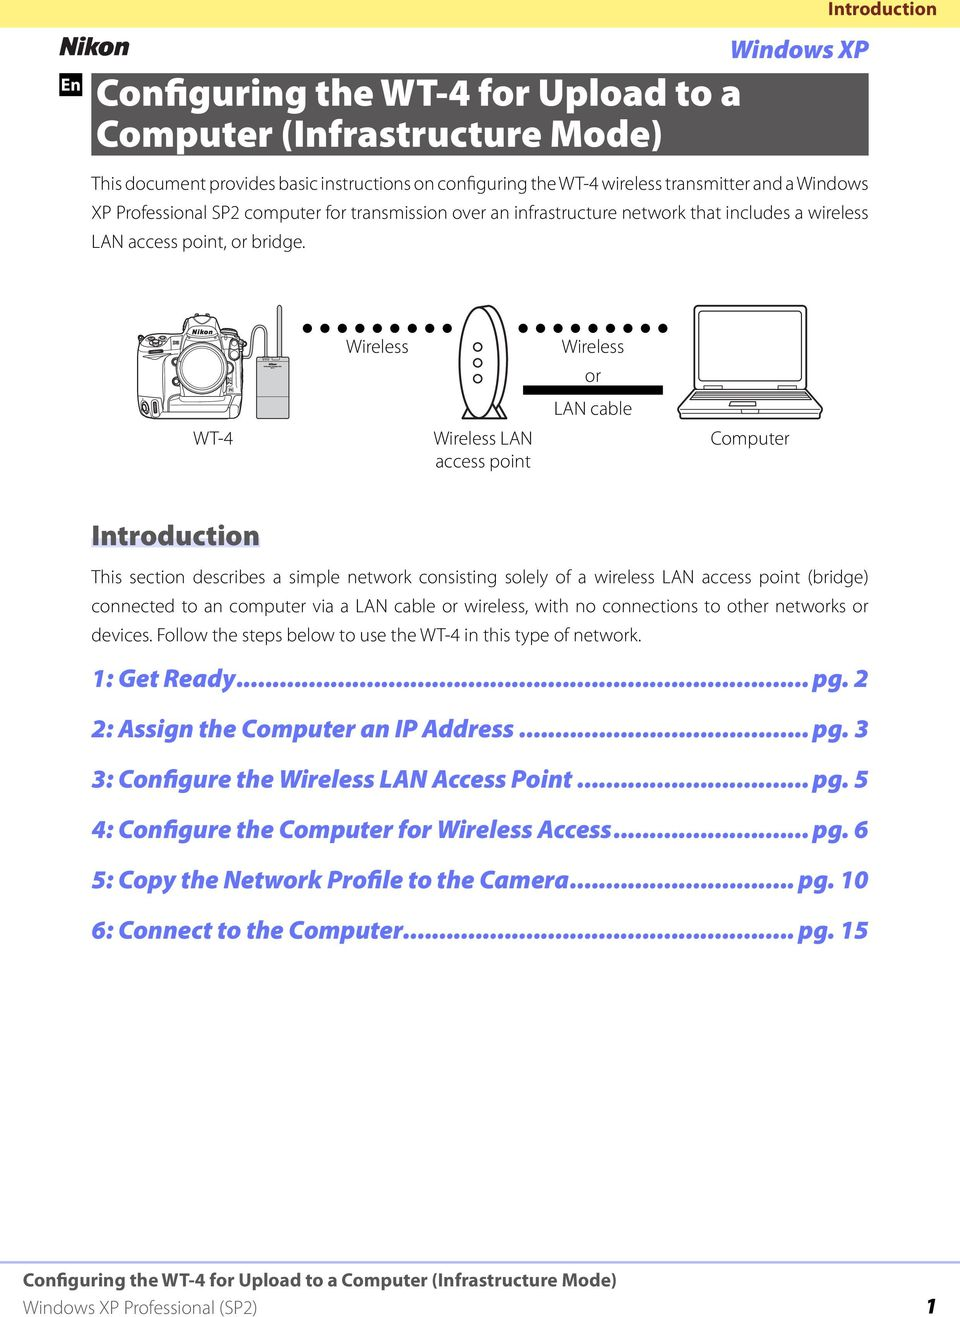 Introduction WT-4 Wireless Wireless LAN access point Wireless or LAN cable Computer Introduction This section describes a simple network consisting solely of a wireless LAN access point (bridge)